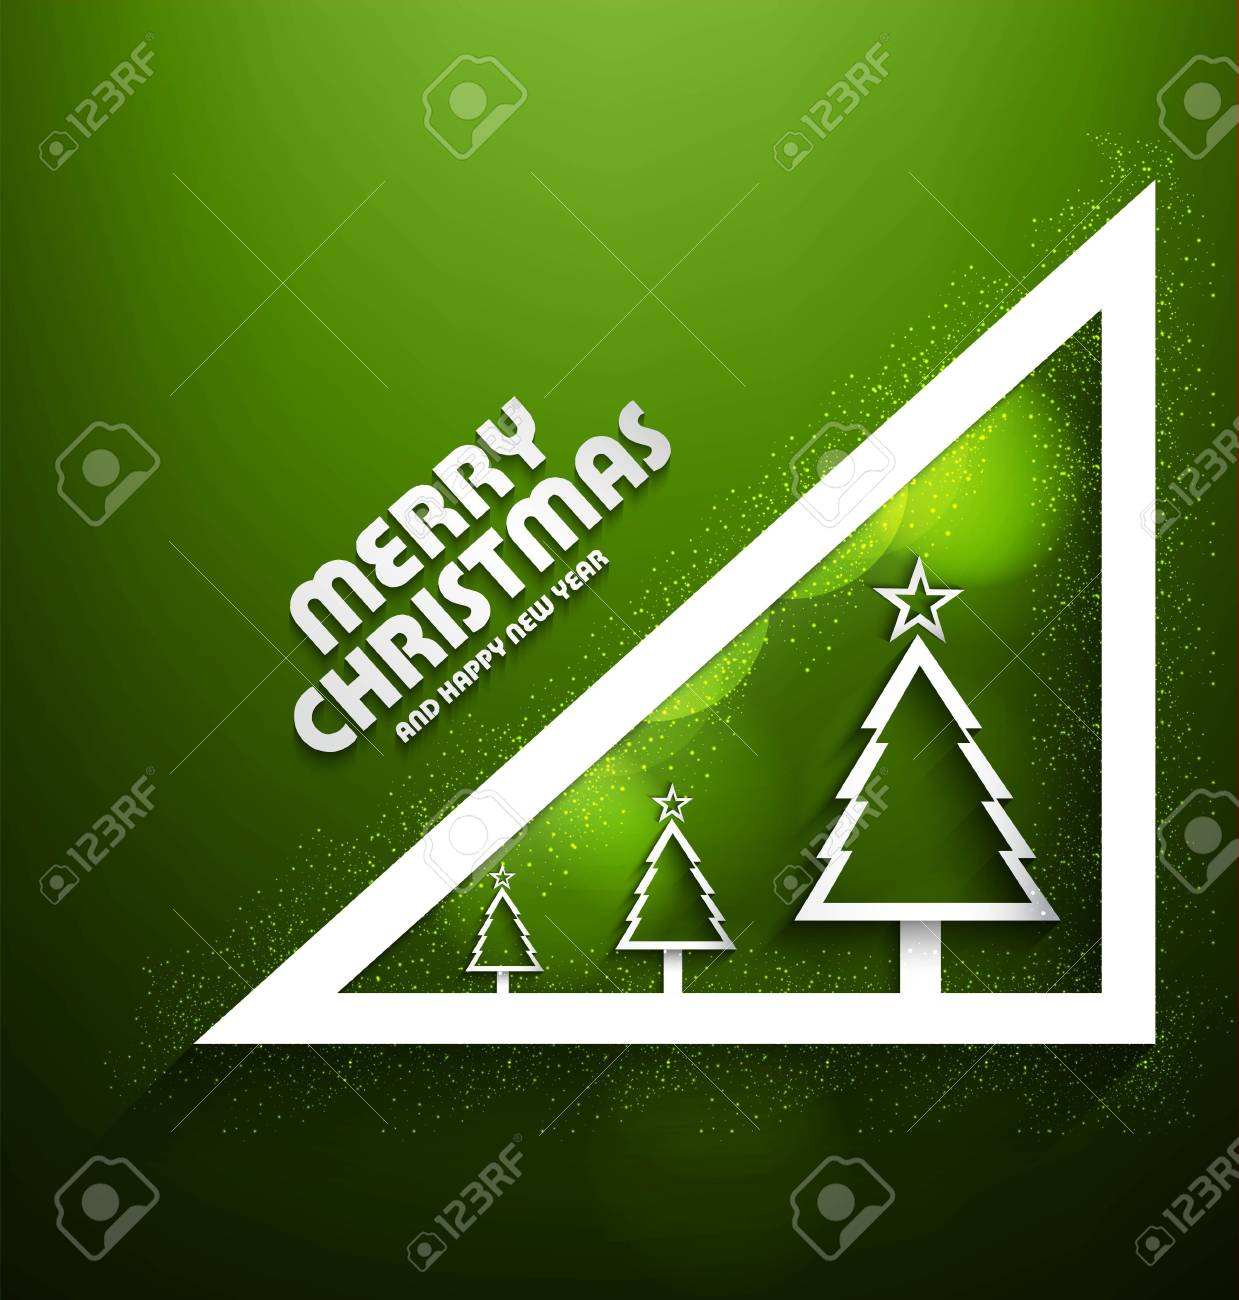 Stylish merry christmas tree star green colorful new year card background vector illustration Stock Vector - 18210649